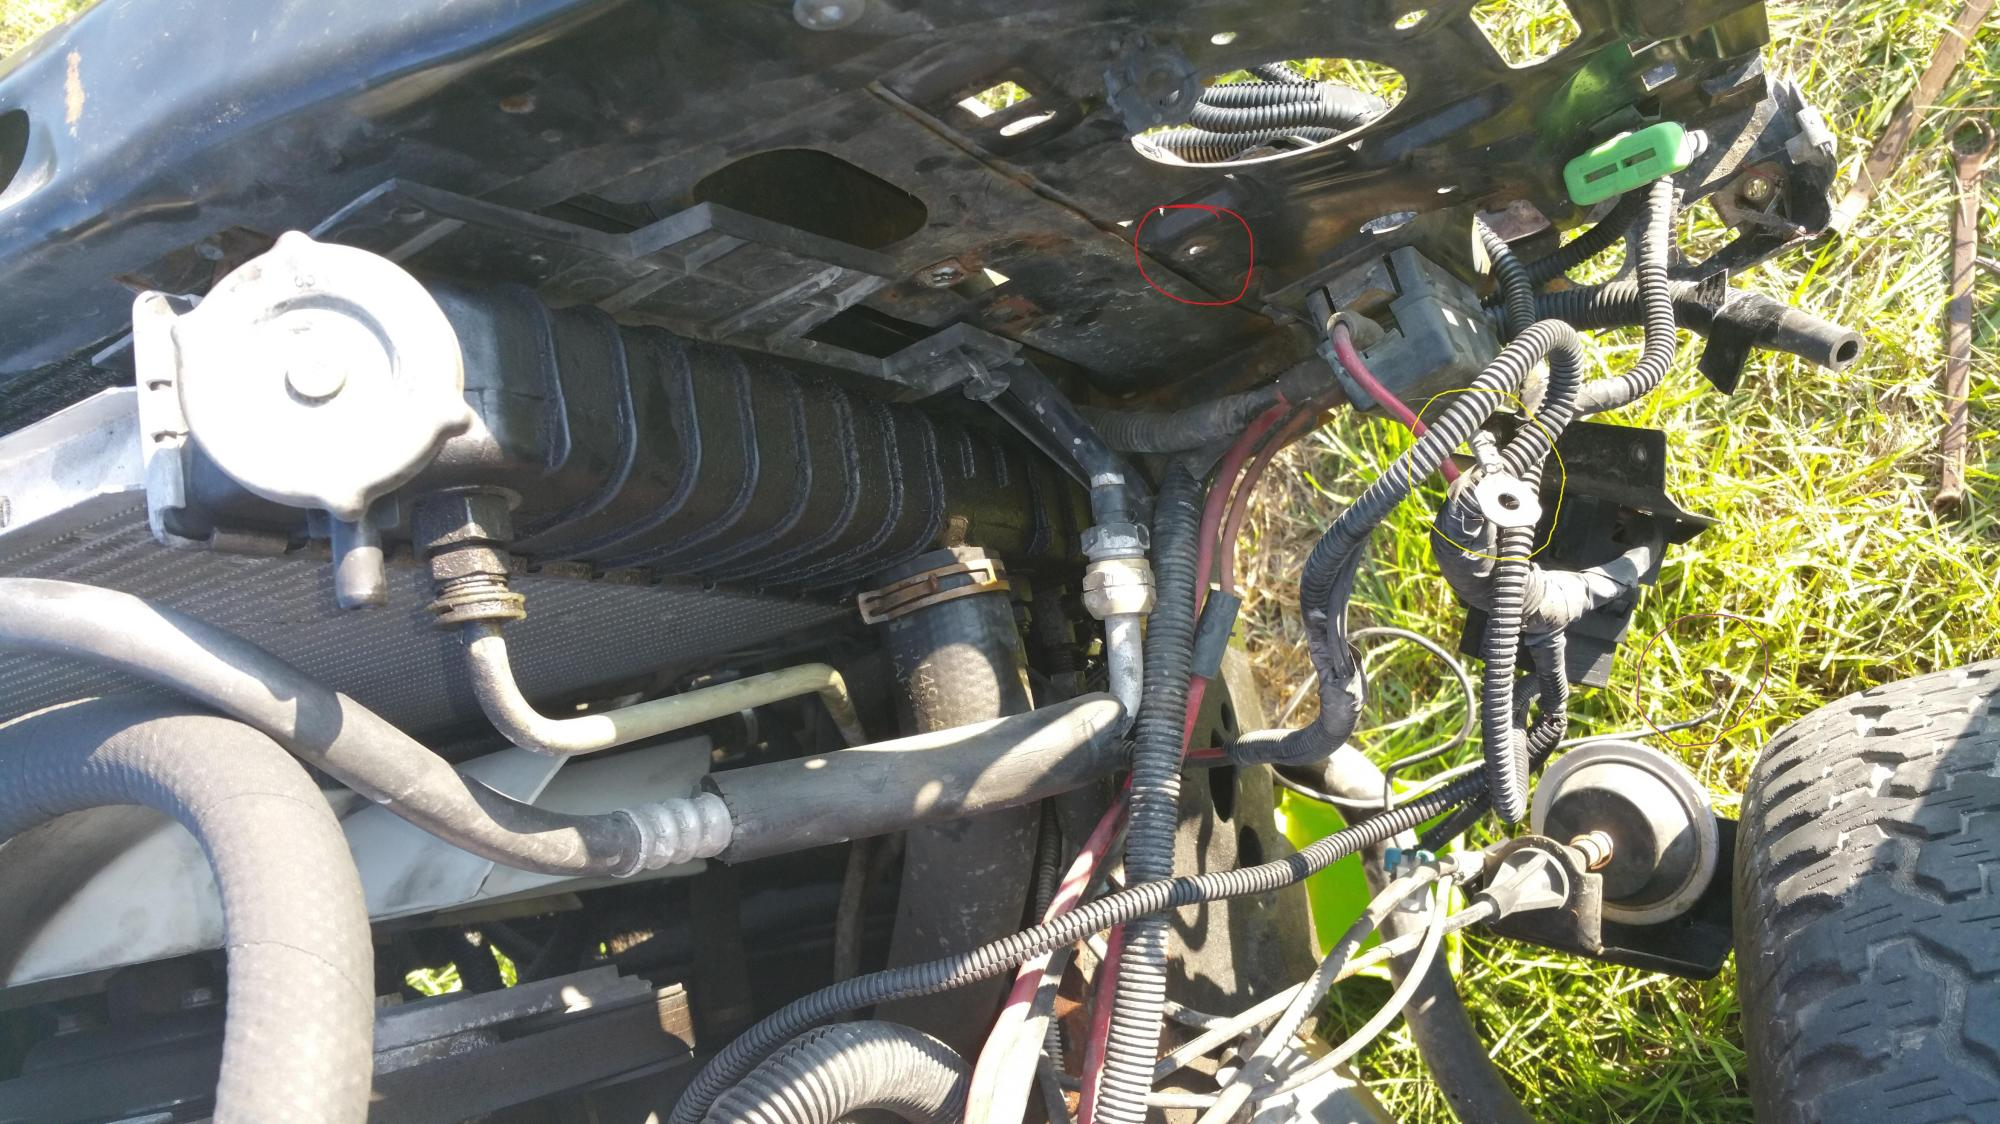 hight resolution of where to connect ground wires 99 chevy blazer pic included yesyesyes